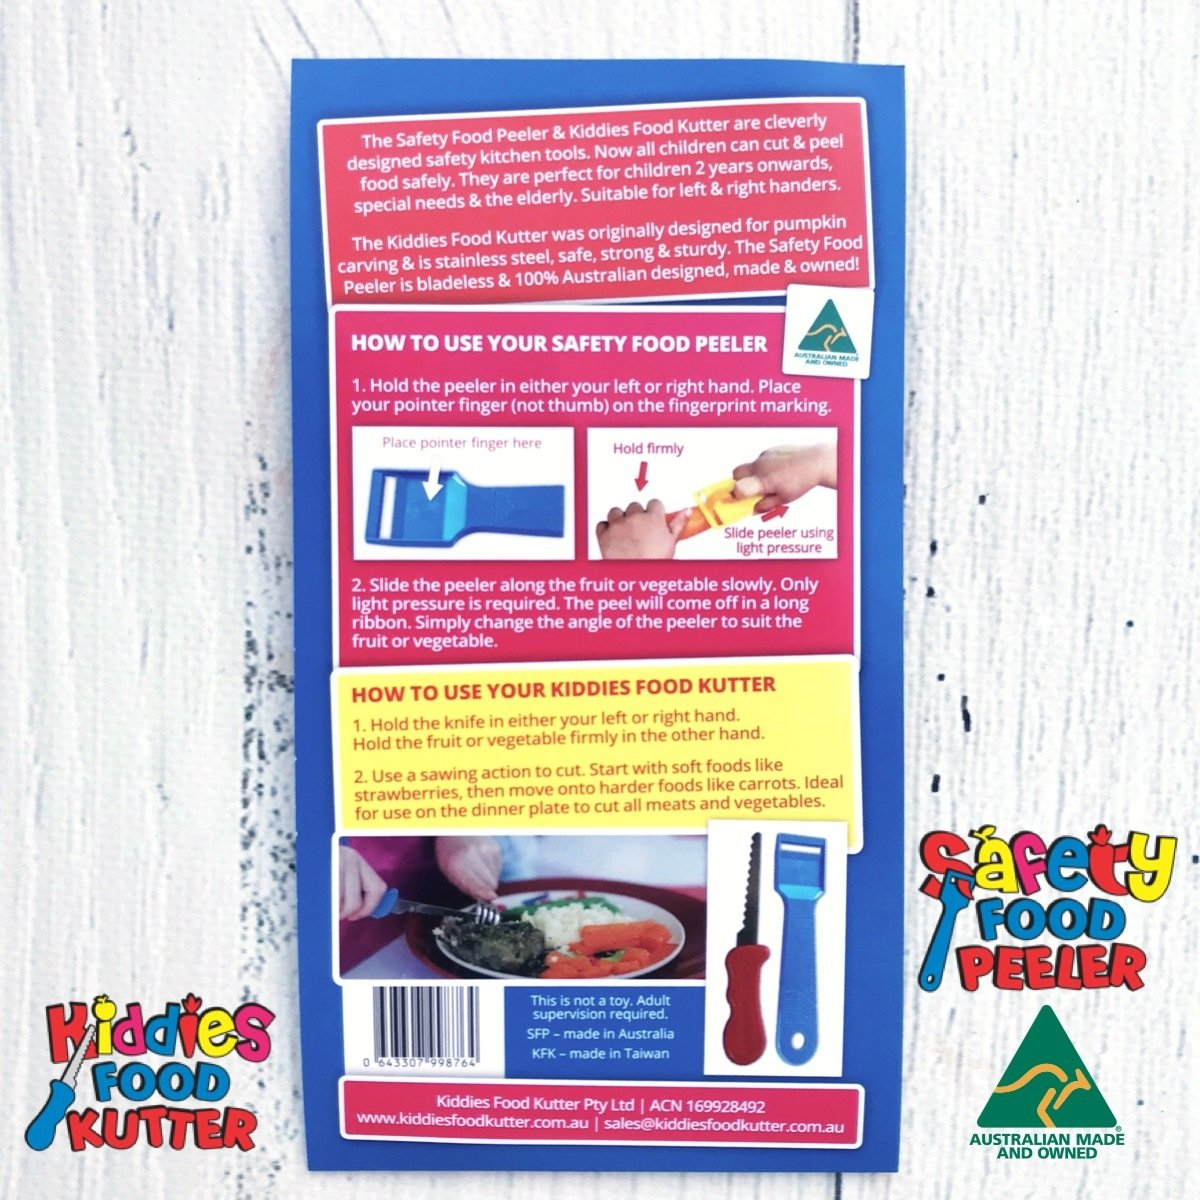 Kiddies Food Kutter & Safety Food Peeler 4-Pack Instructions